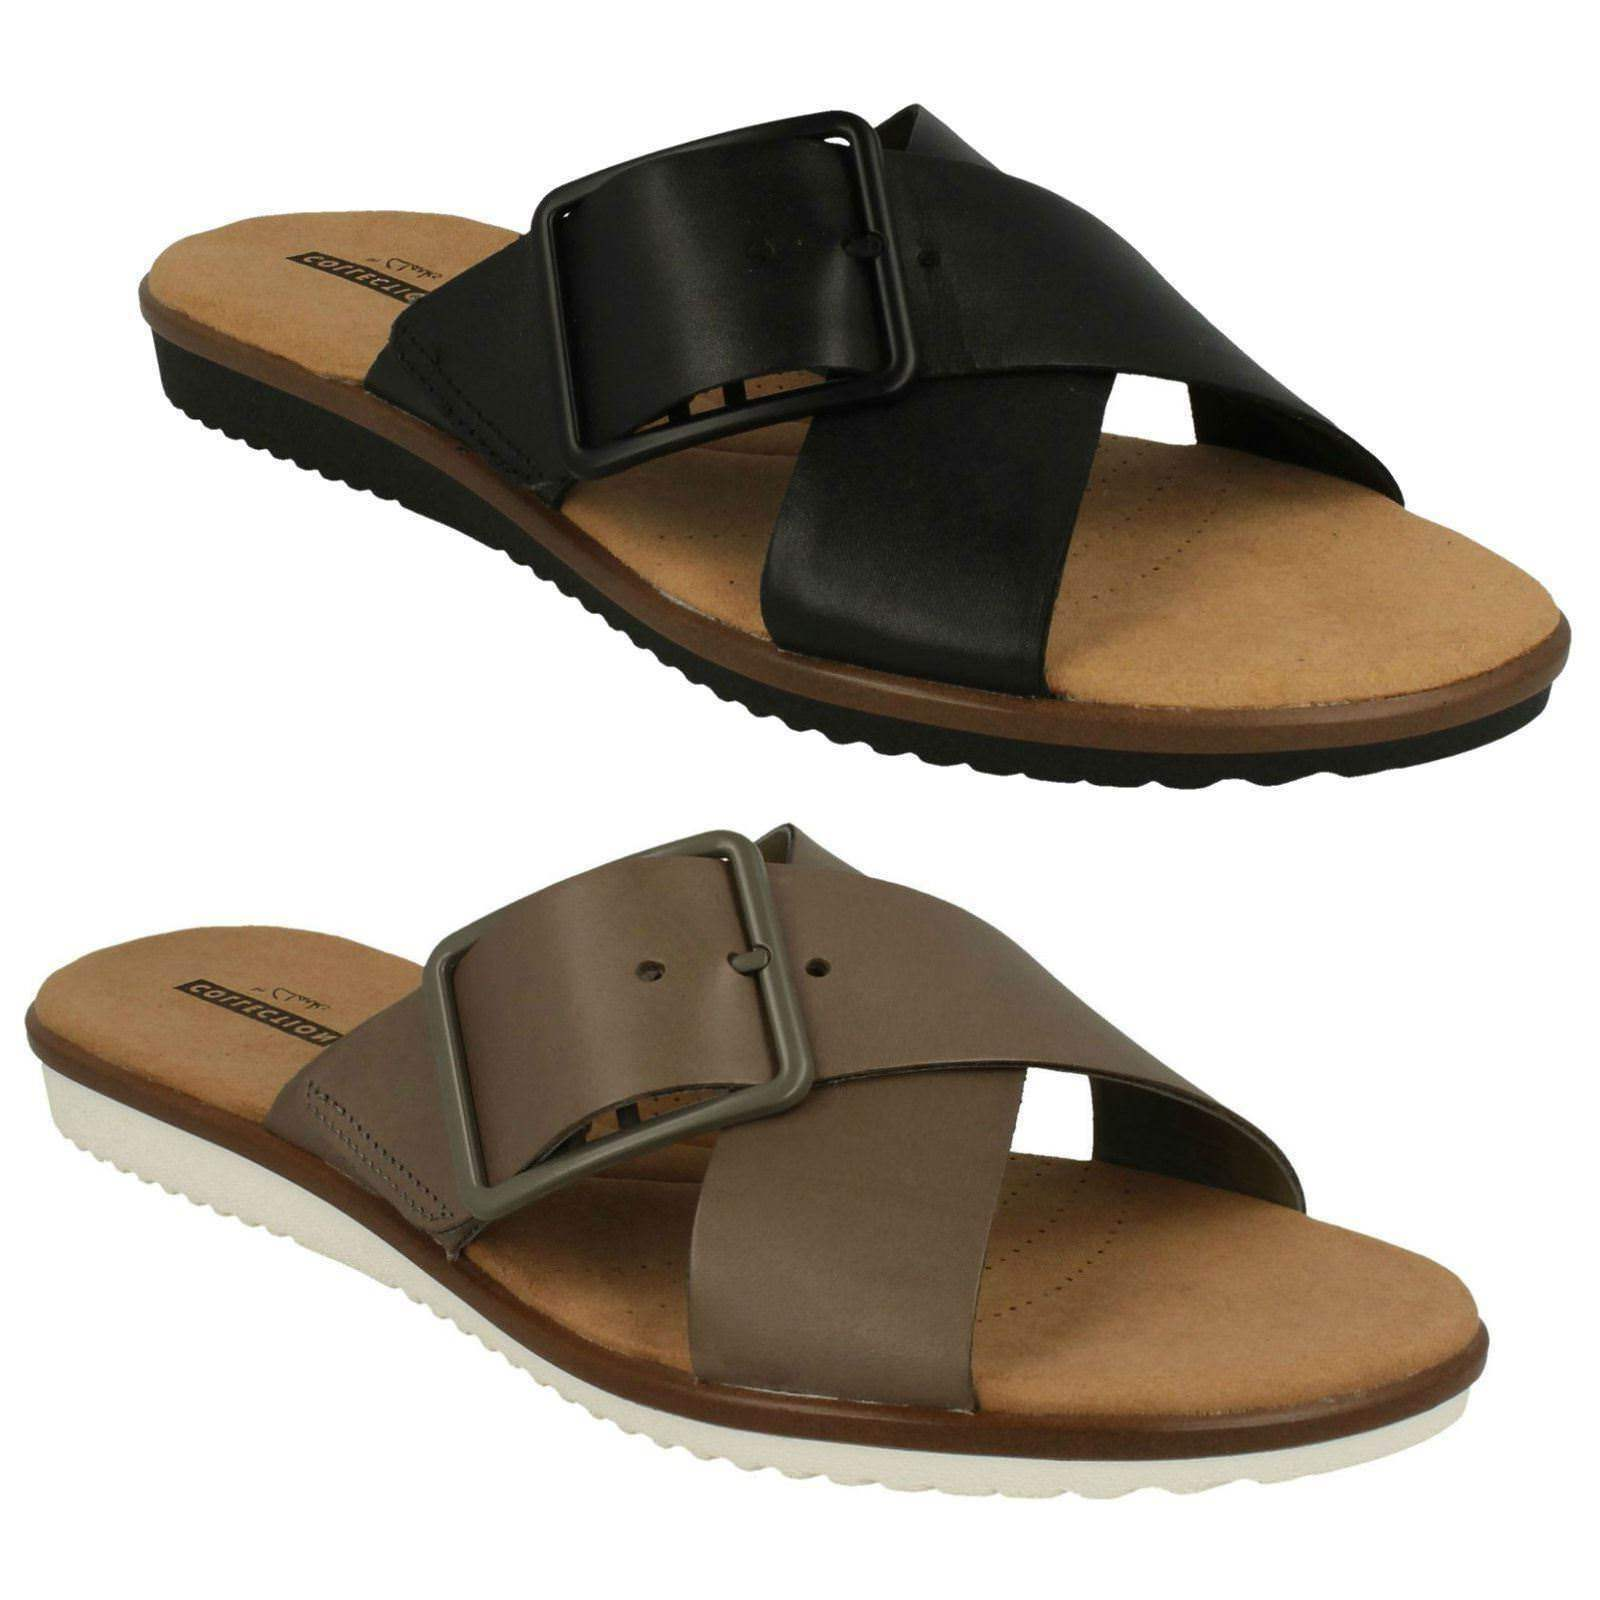 LADIES CLARKS LEATHER SLIP ON BUCKLE FLAT MULE CASUAL SANDALS Schuhe KELE HEATHER